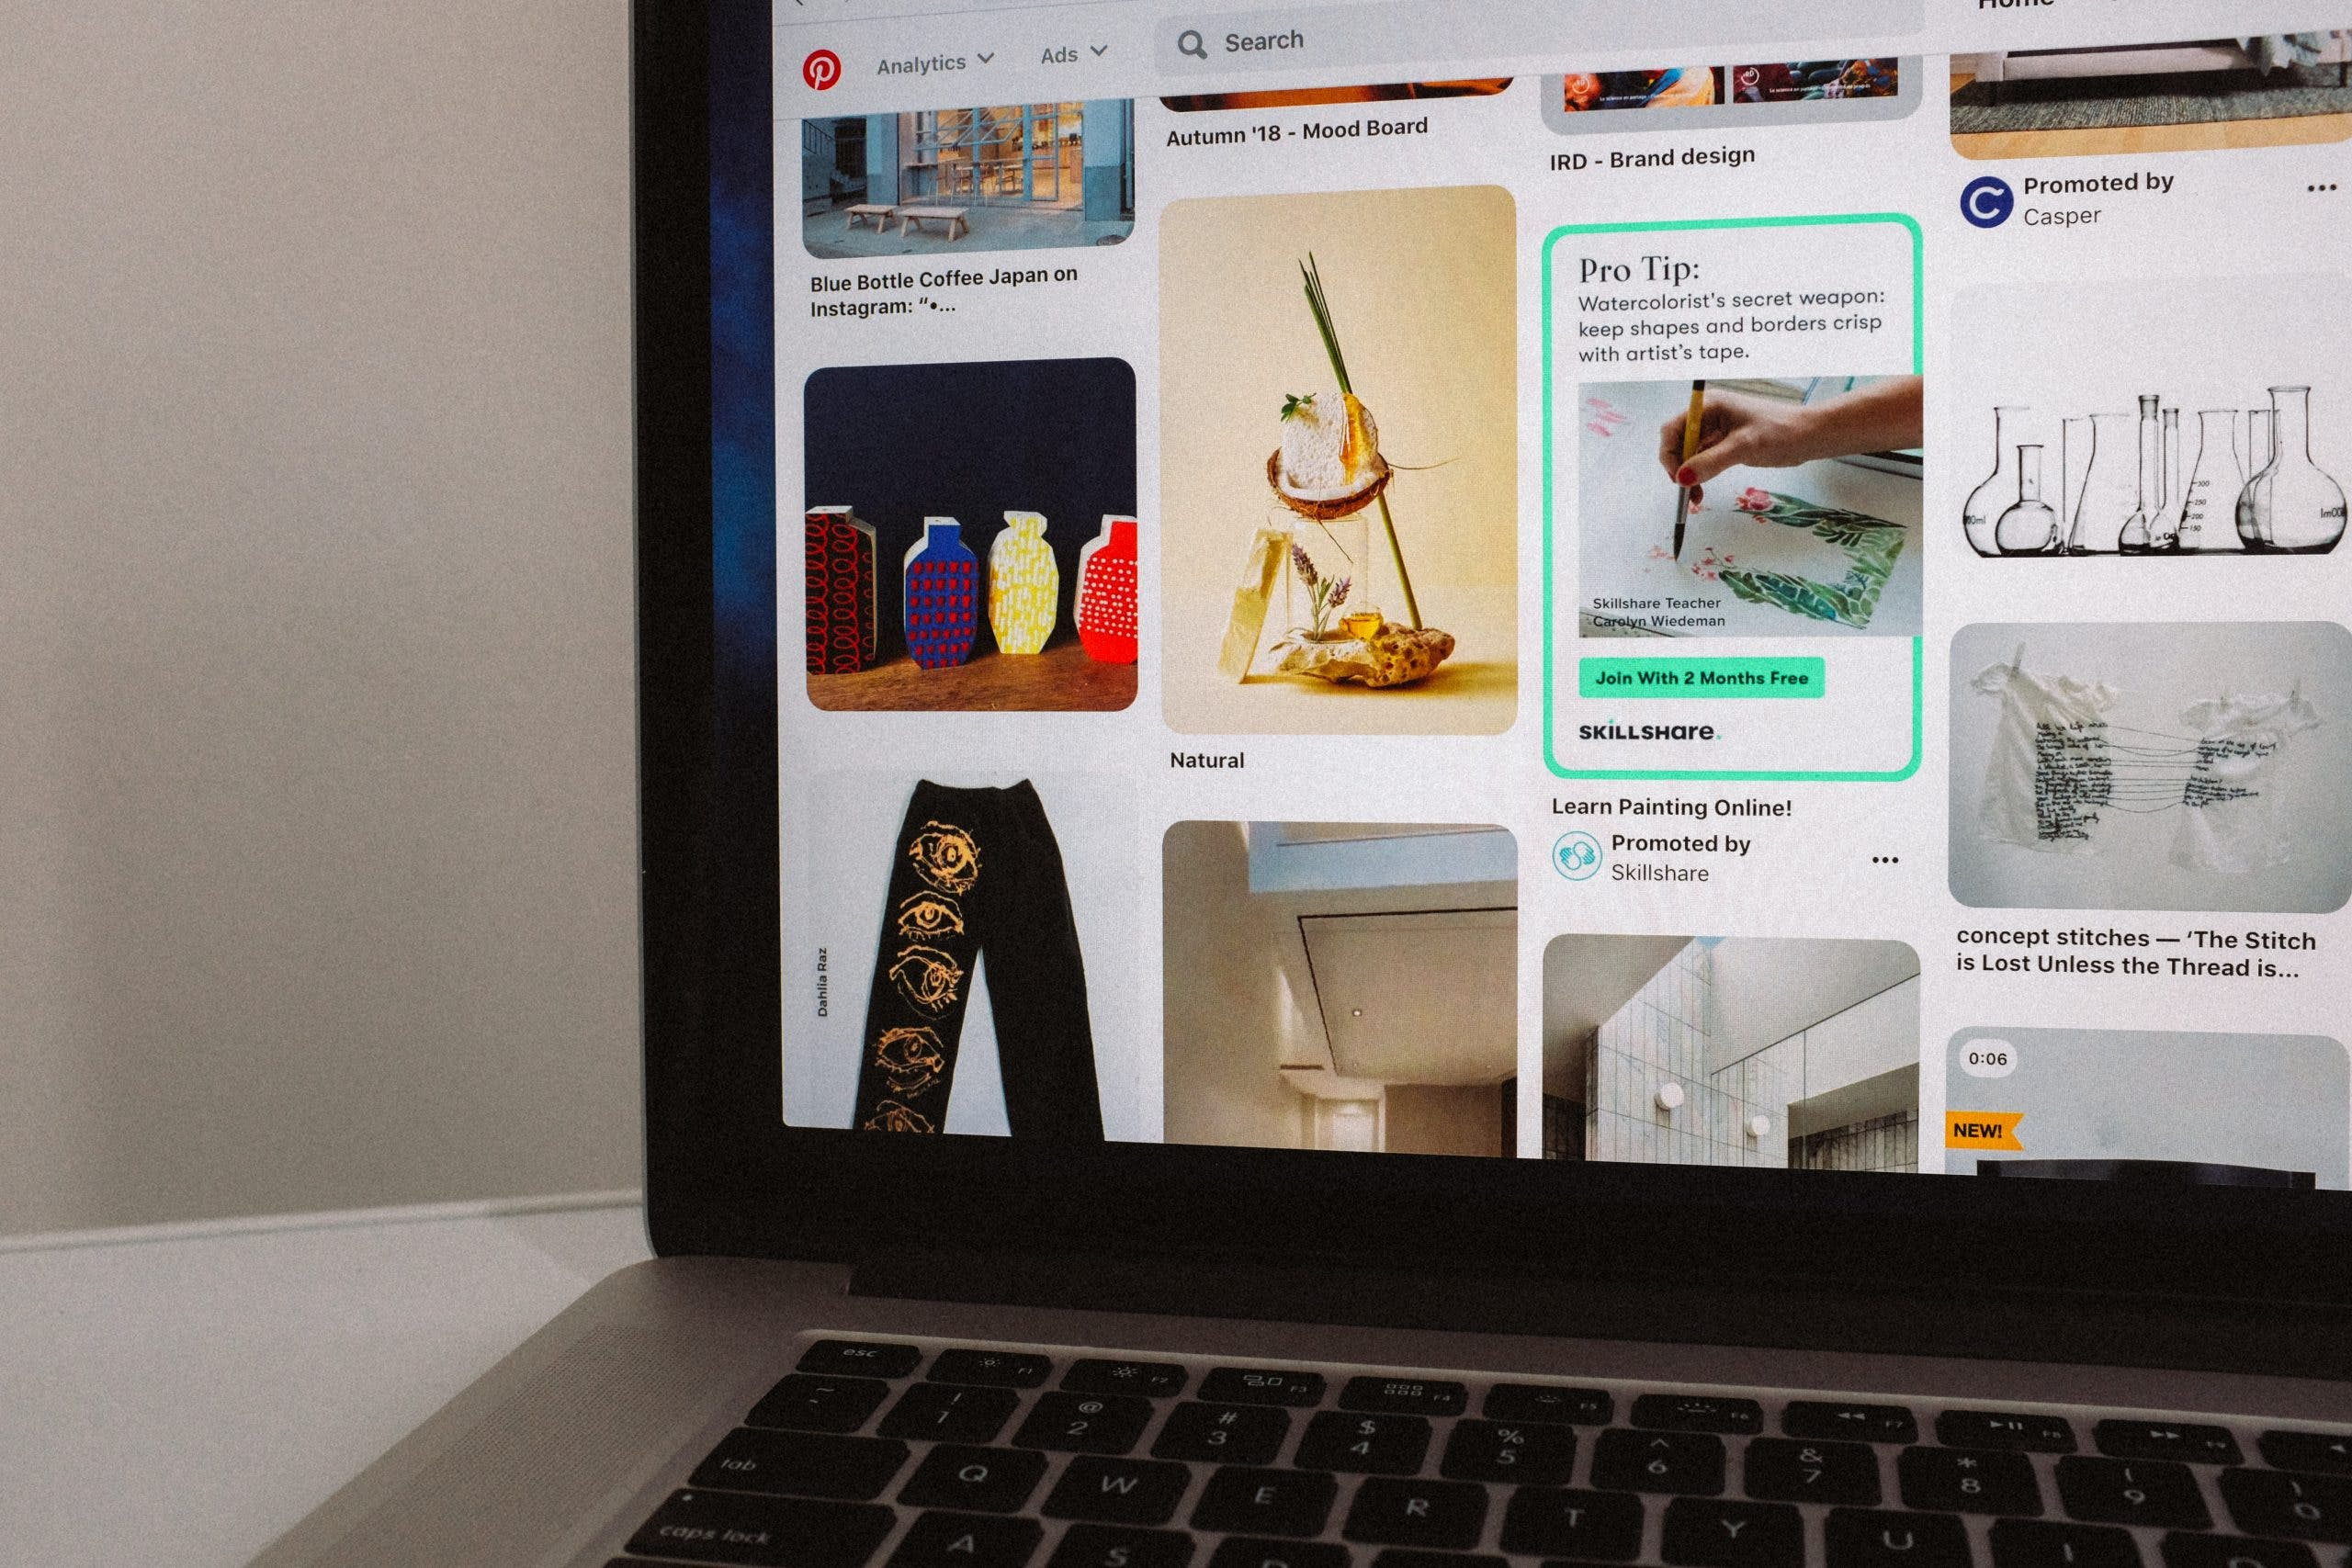 marketing my brand and products on pinterest